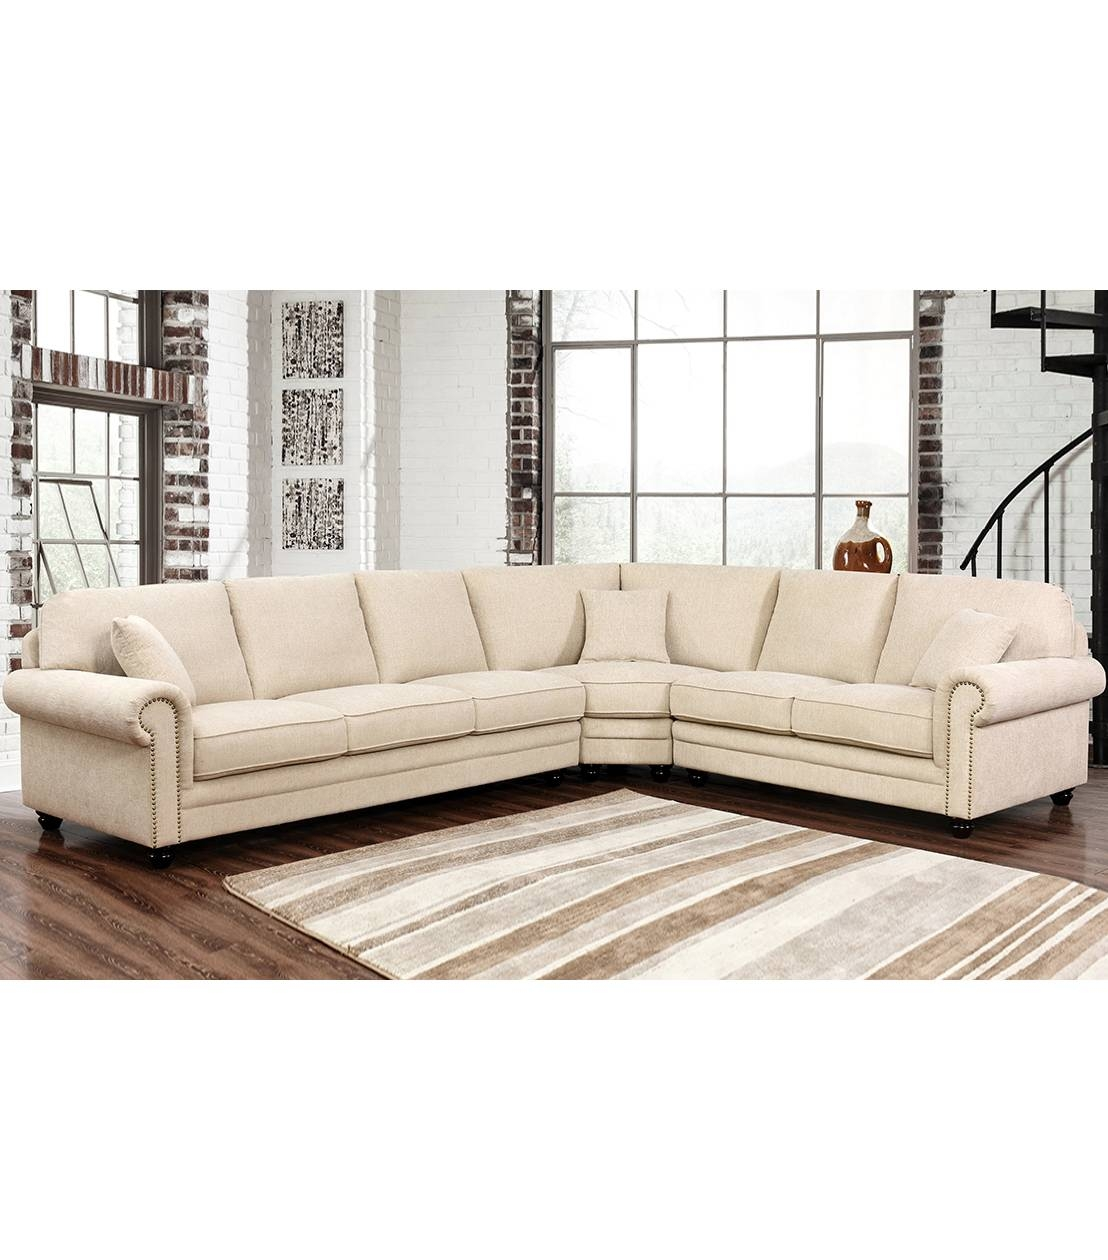 Sectionals : Deana Fabric Sectional within Abbyson Sectional Sofa (Image 23 of 30)